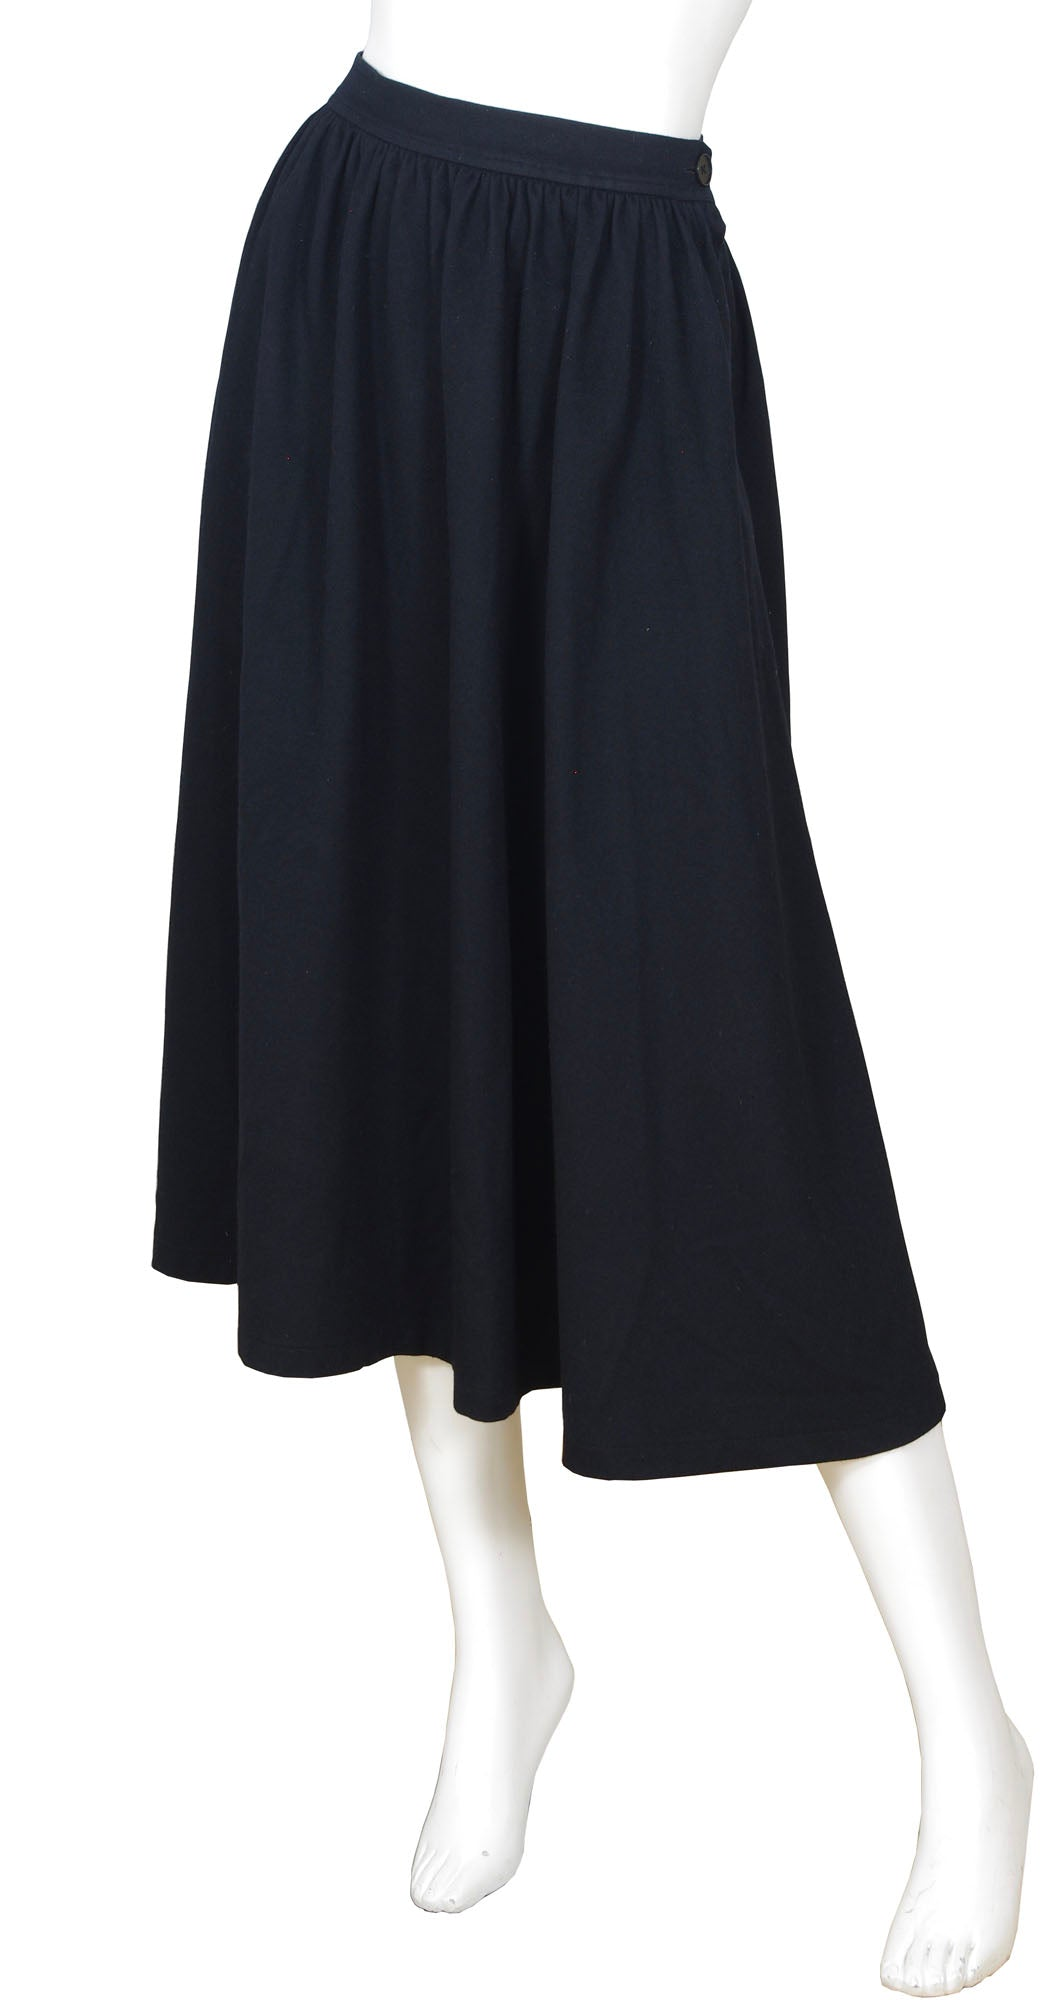 1980s Black Wool High Waisted Midi Skirt